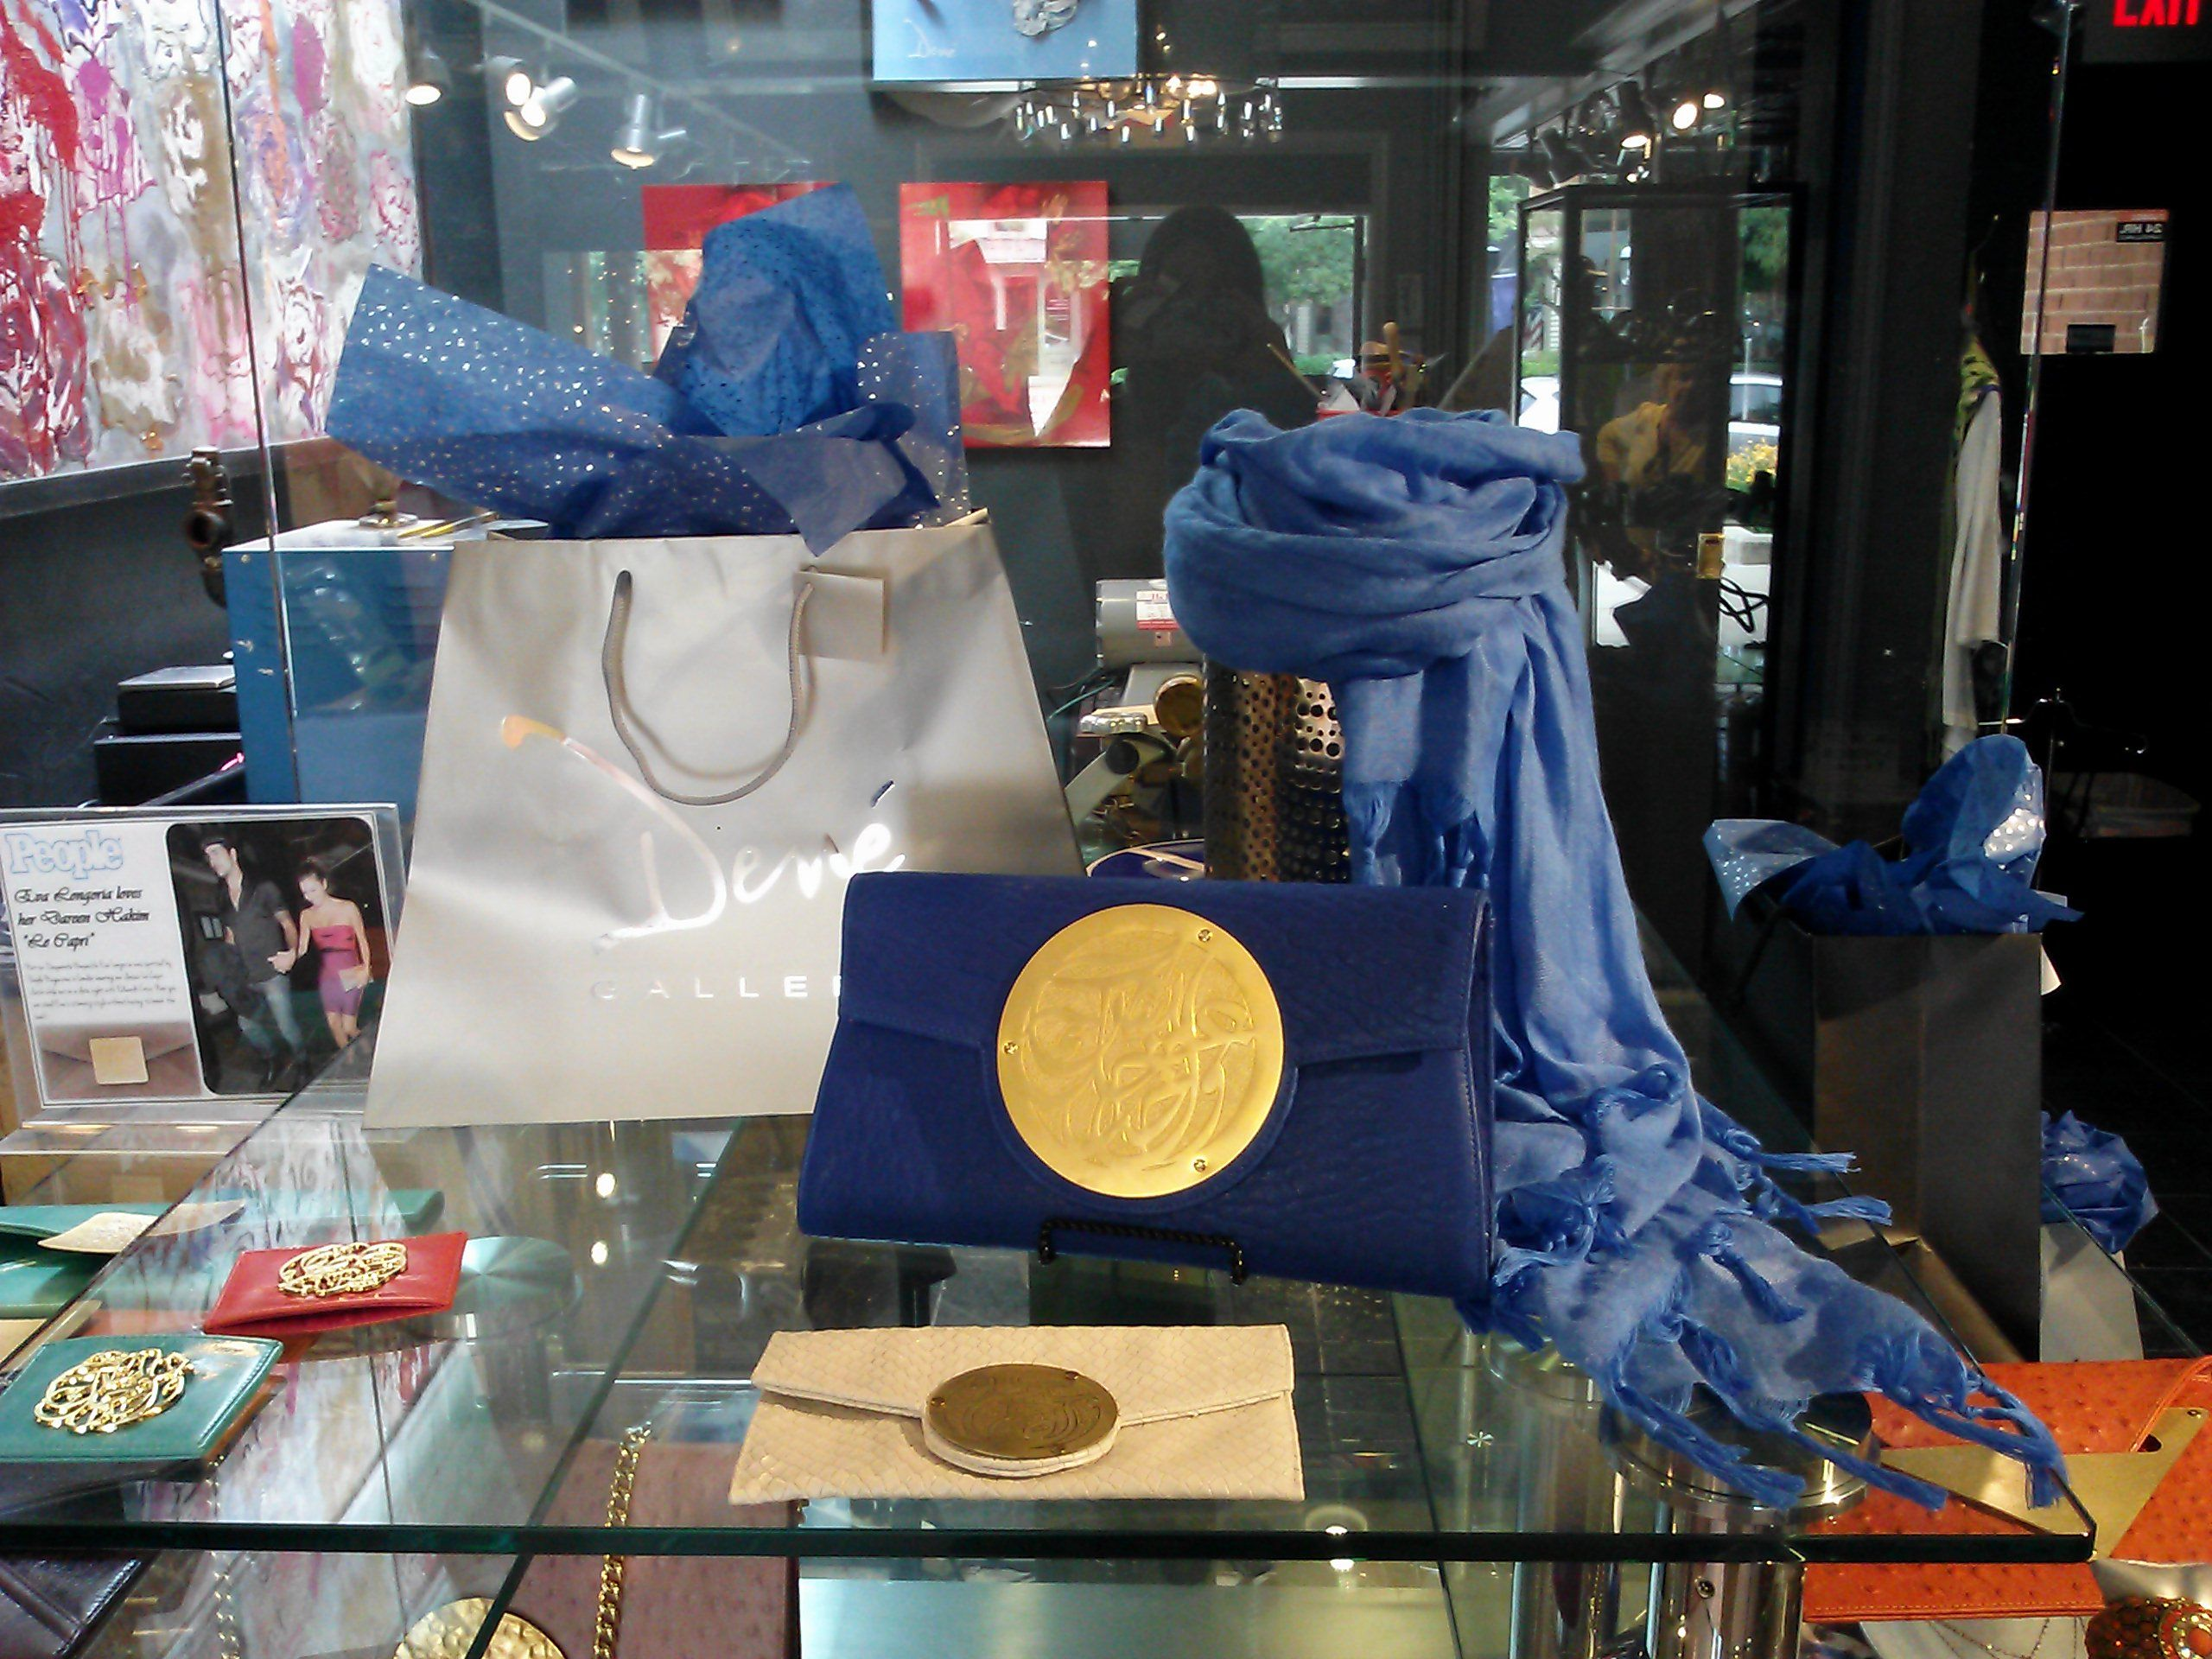 Beauty in Blue! Dareen Hakim artist purses at Dené Gallery. Find out more at Dené Gallery, or shop our artist purses by Dareen Hakim at http://www.geneva-illinois-jeweler.com/#!handbags/c11g4